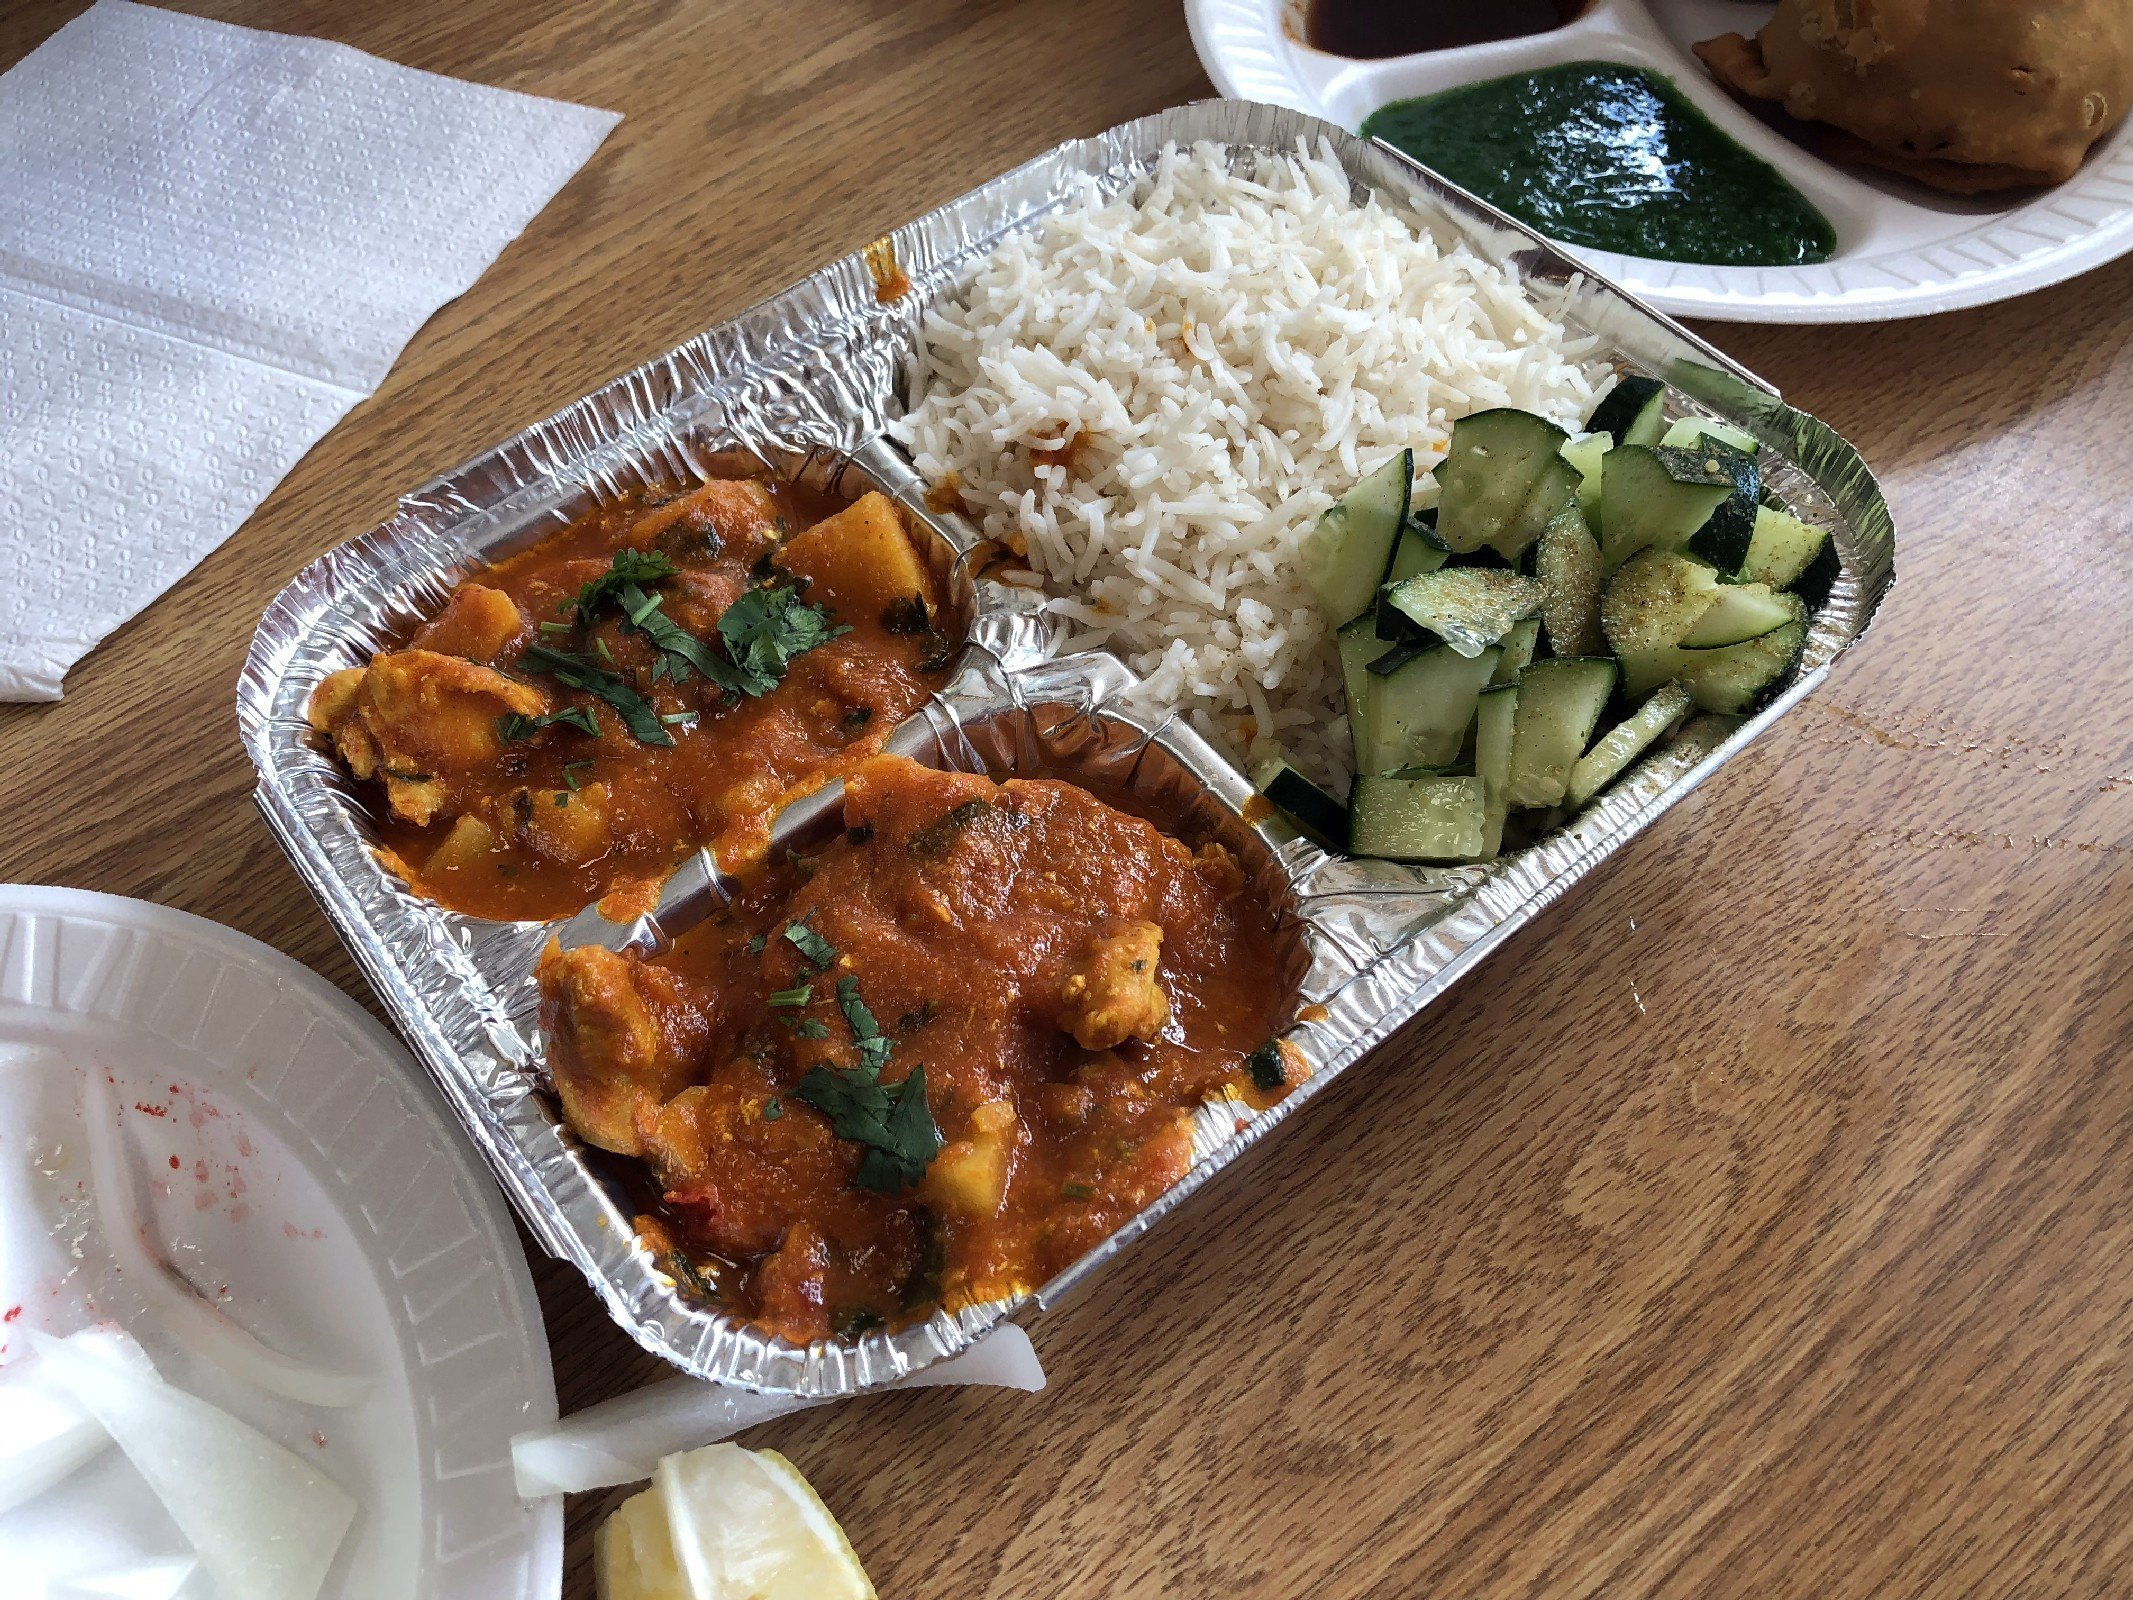 Indian Bistro in Palatine, IL by Jets Like Taxis